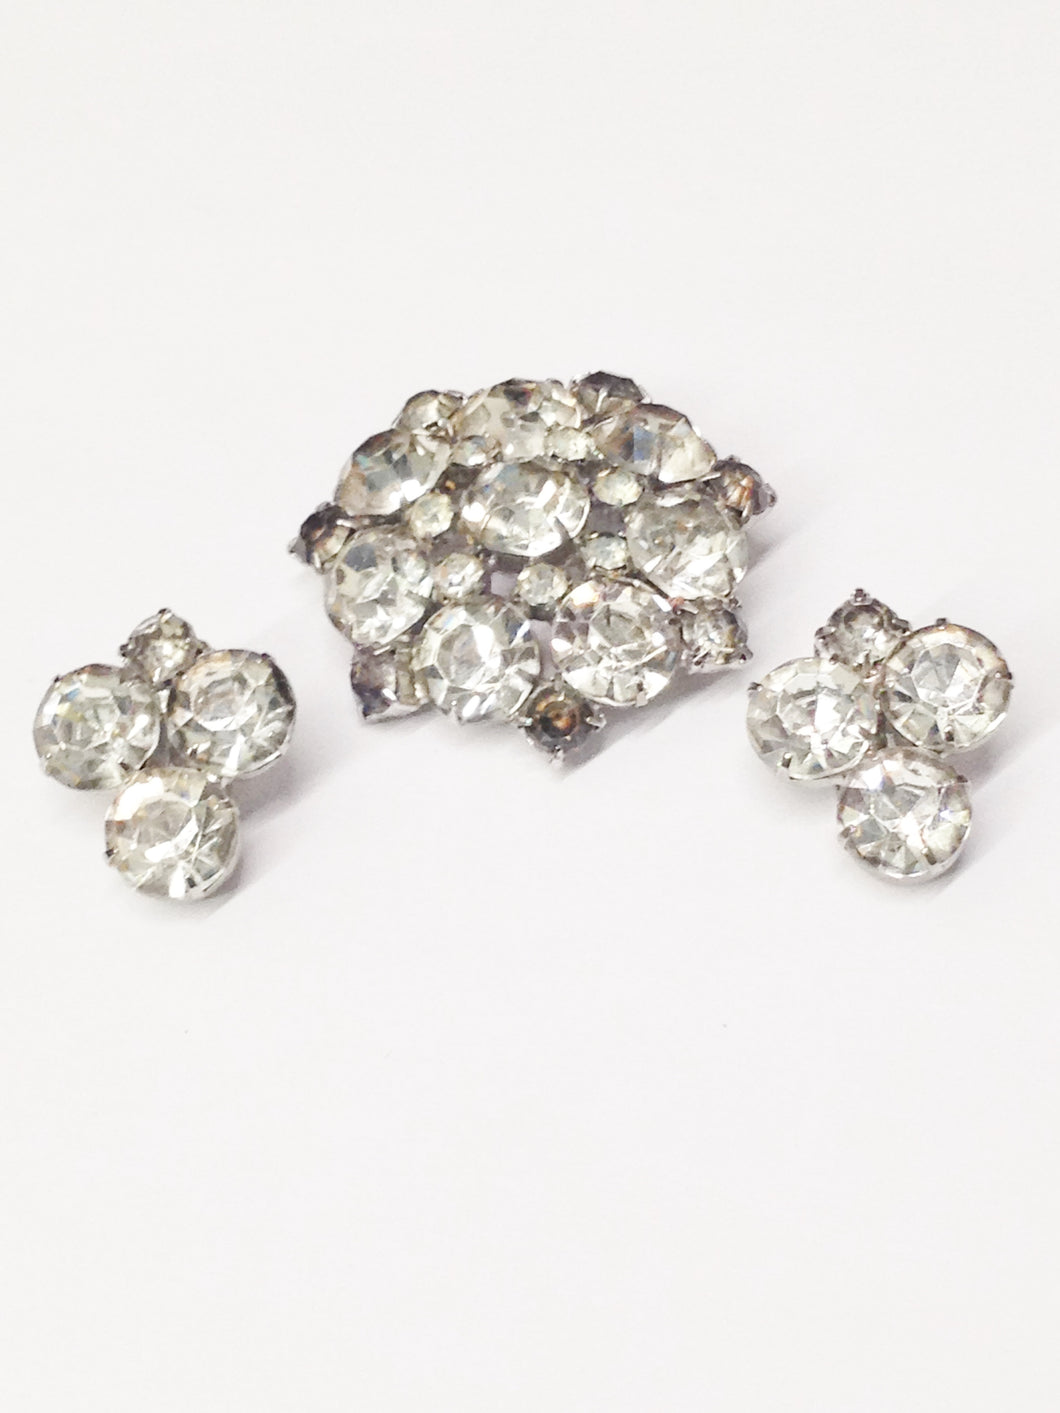 1940's Estate Jewelry Clear Rhinestone Brooch Pin and Clip On Earring Set www.hersandhistreasures.com